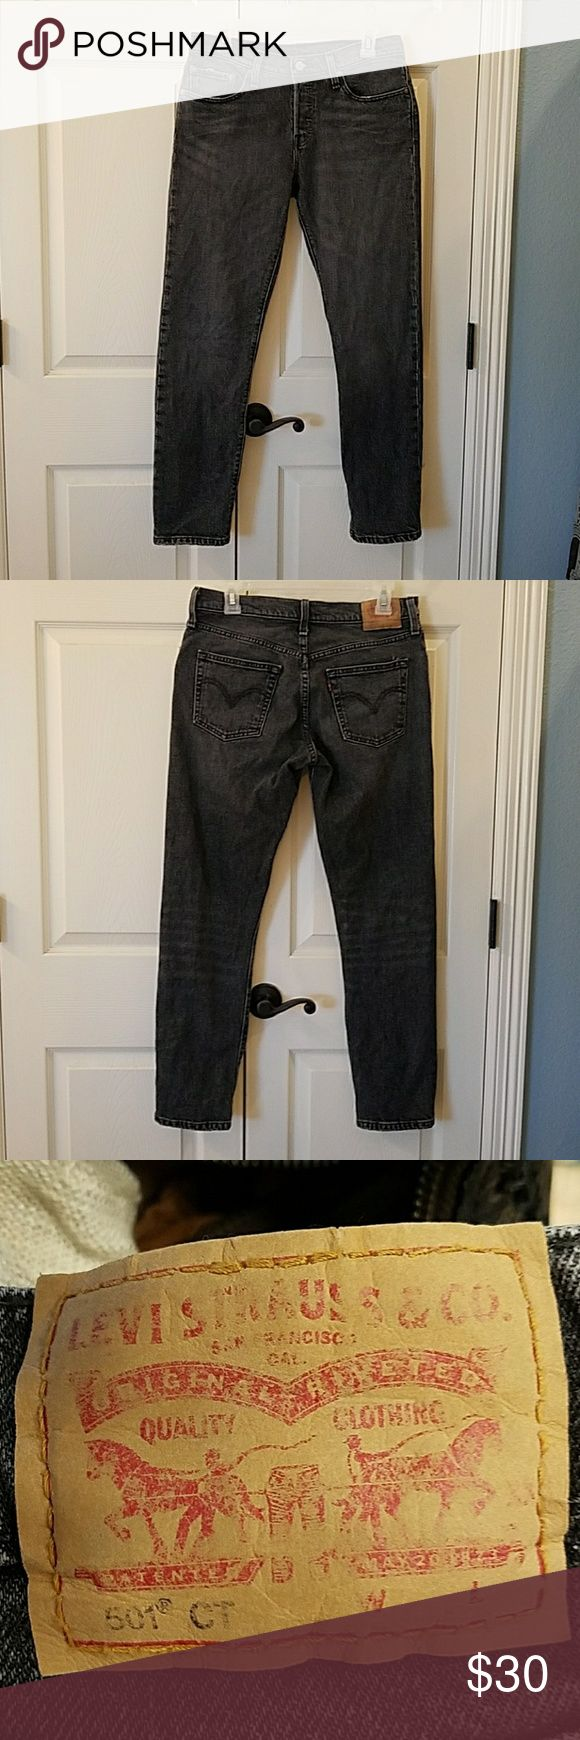 "Levi's 501 CT EUC After the original 501's I have listed were too big, I ordered these in a 26.  But they run even larger than the regular 501's. I have a pair of 25 now and they fit.  But these fit more like a 27. The color is Black Coast. 29"" inseam. They are made of stretch denim.  I bought these new on sale.  I have only worn once because they are too big for me.  No flaws. Levi's Jeans Boyfriend"